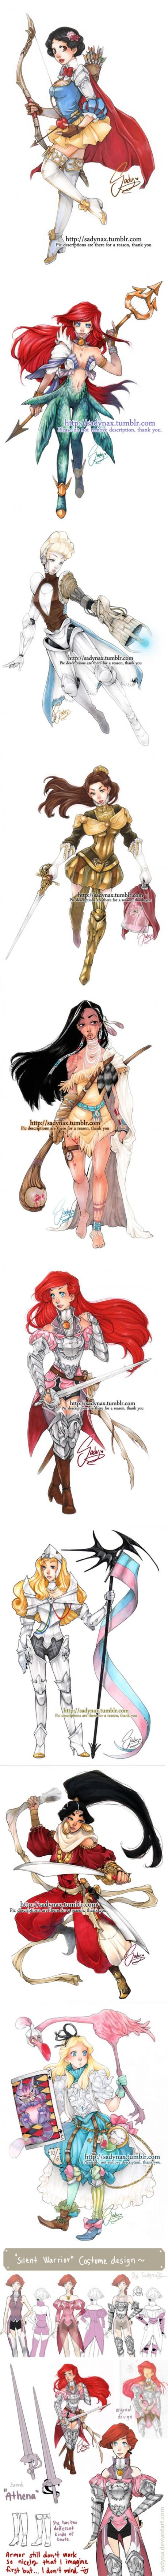 Disney Princesses  + Armors =  Warrior Princesses! Would like to see people cosplay this.. Hahahha